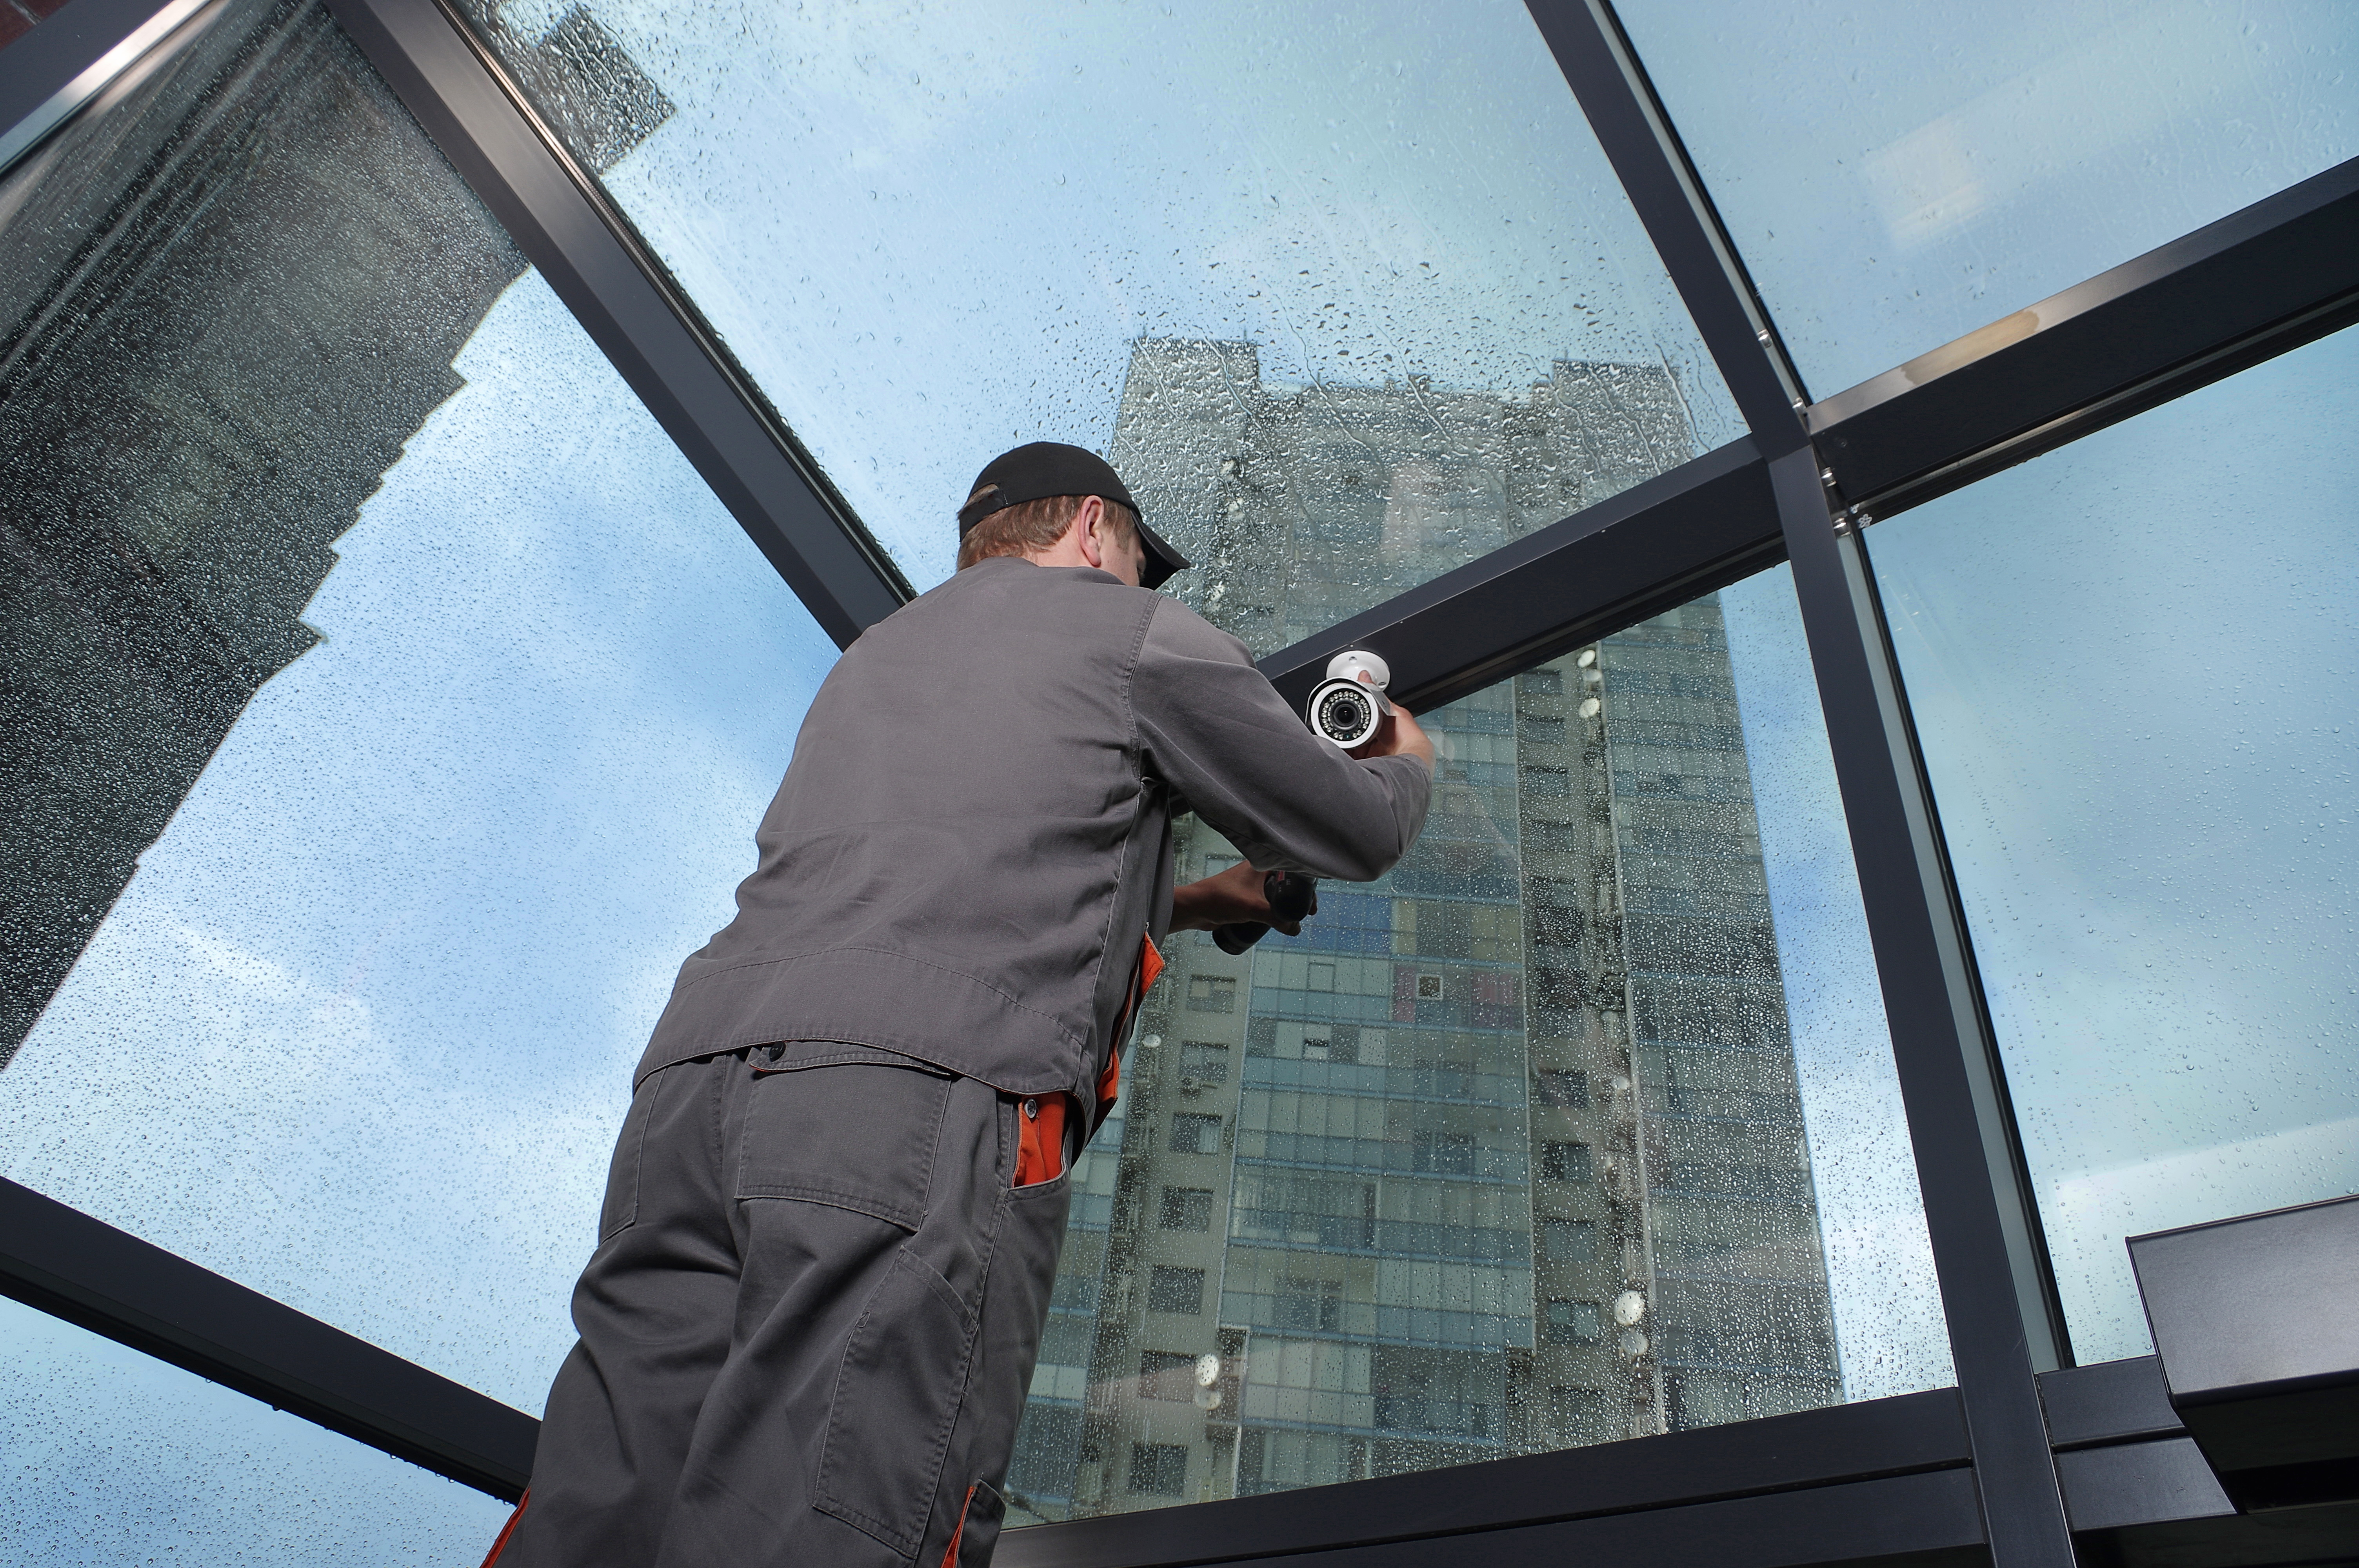 Installing a security camera system in the city